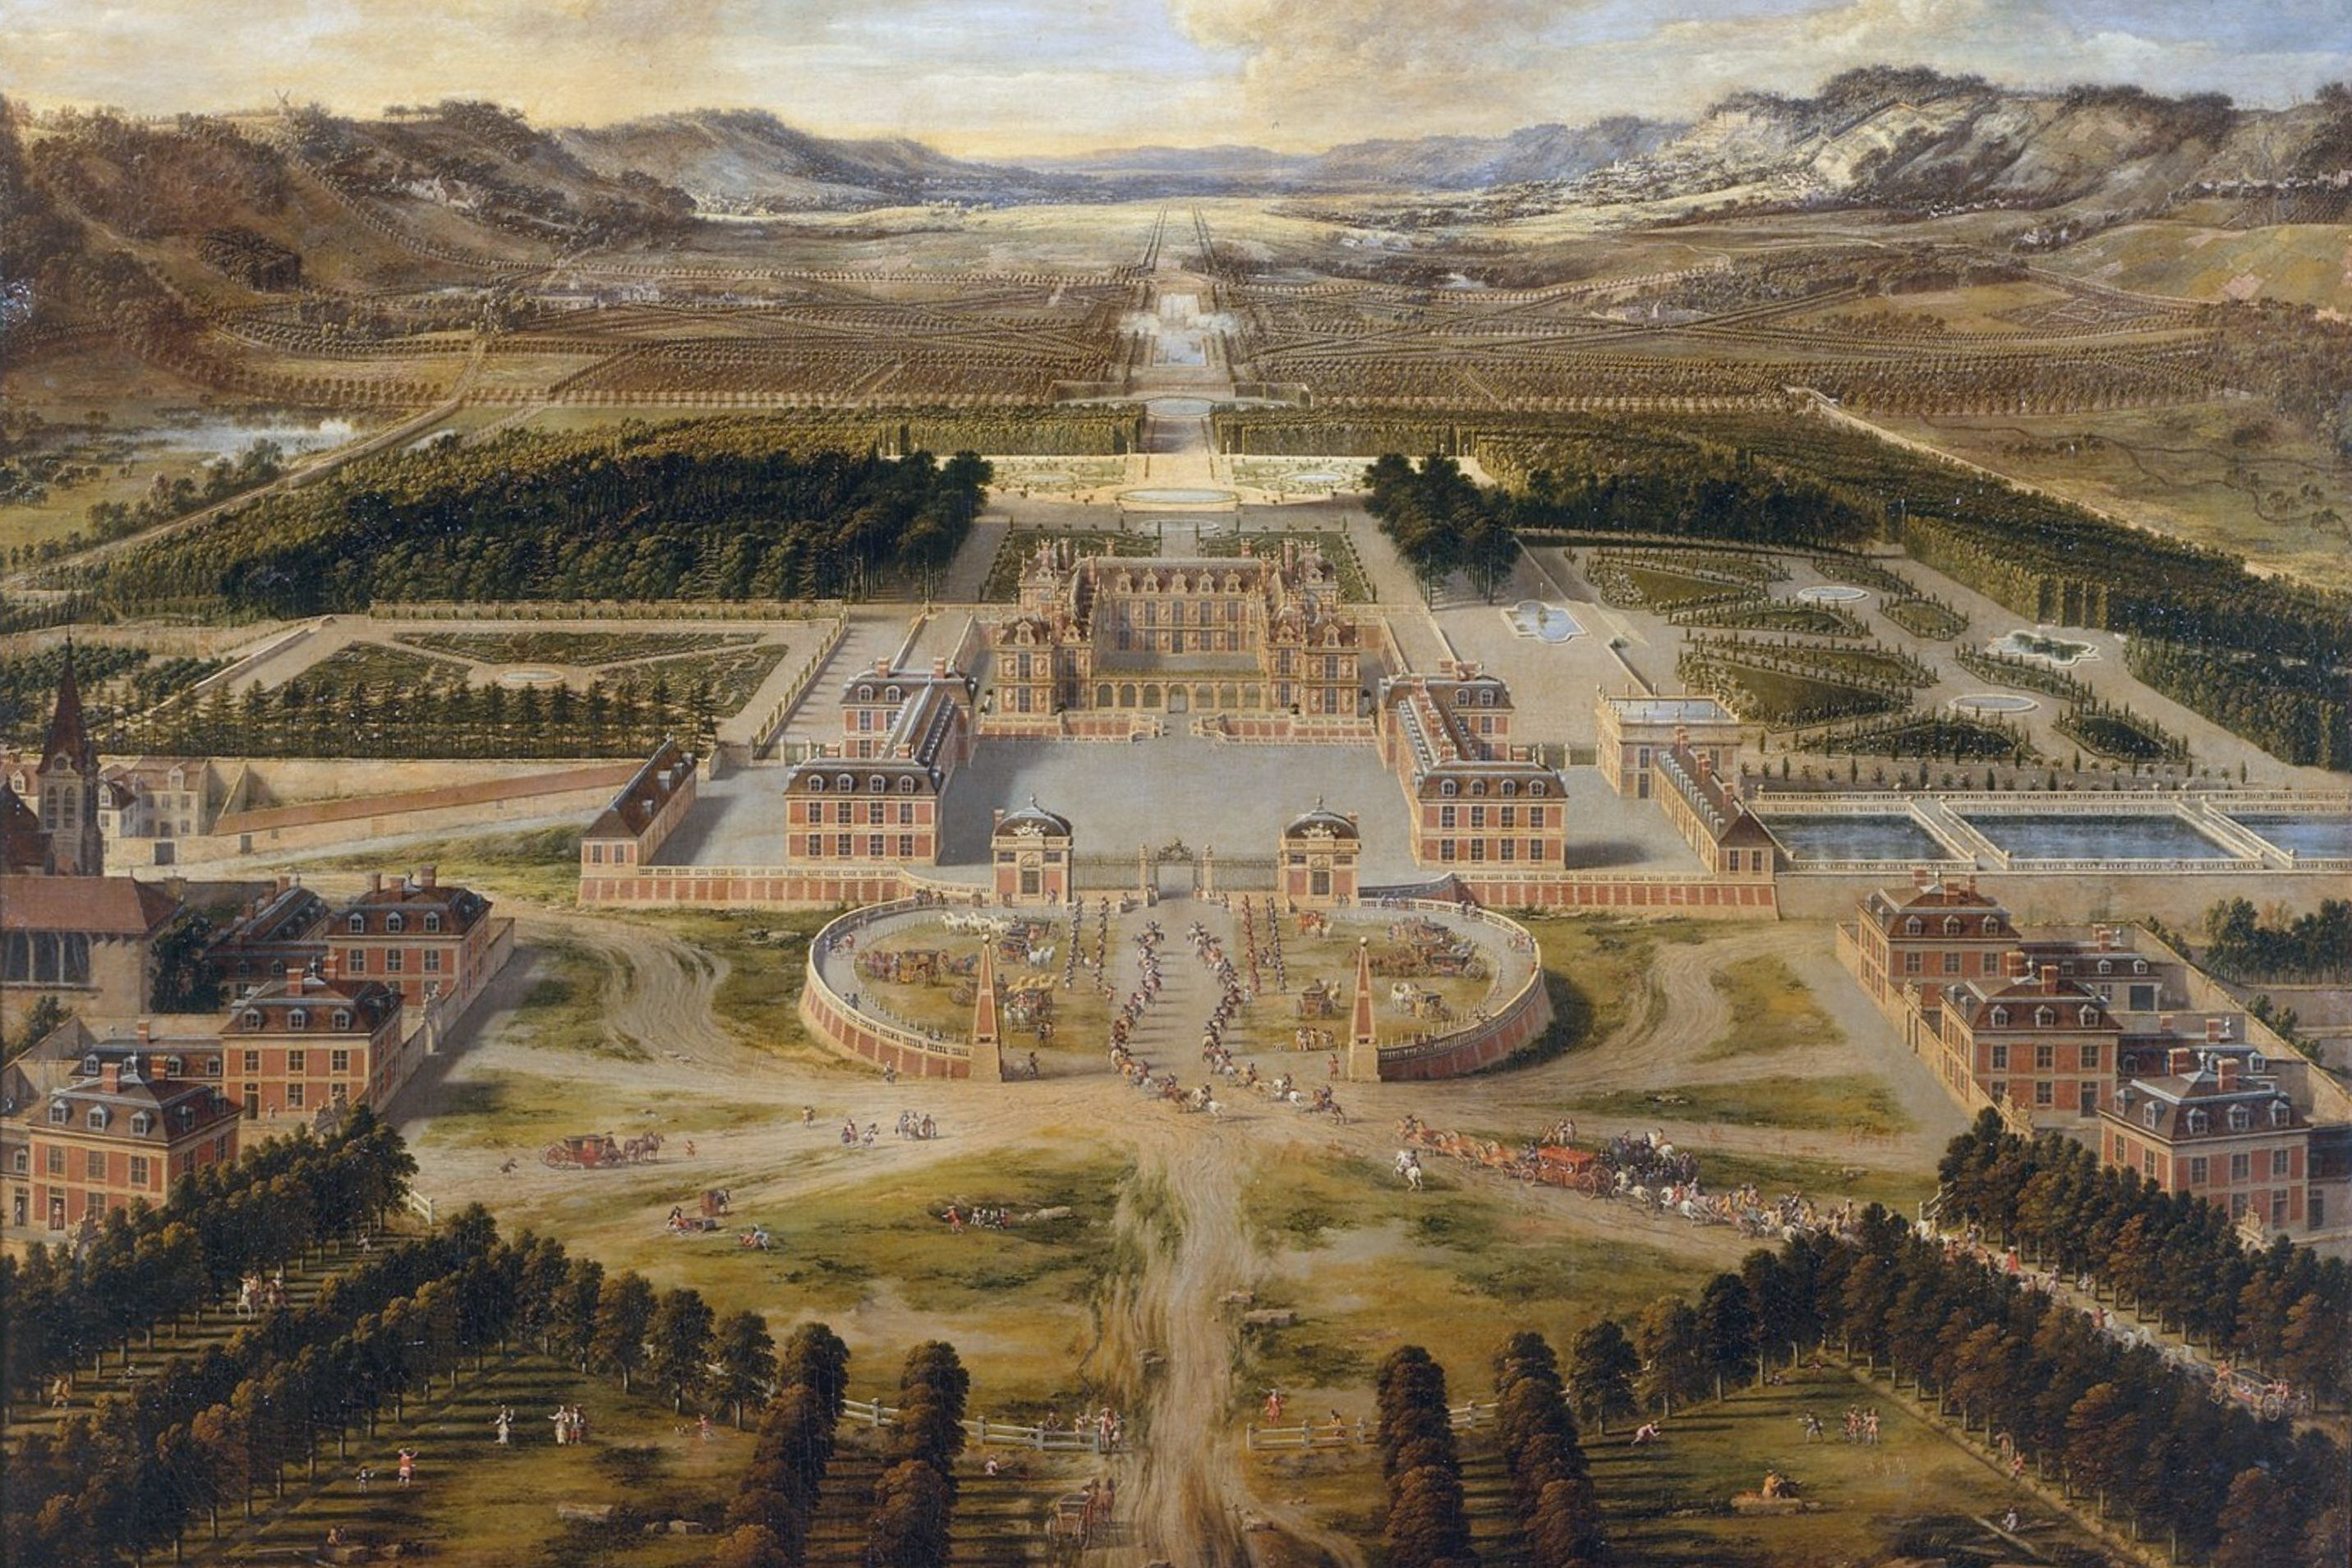 Versailles palace as a model for luxury. Image: Wikipedia, public